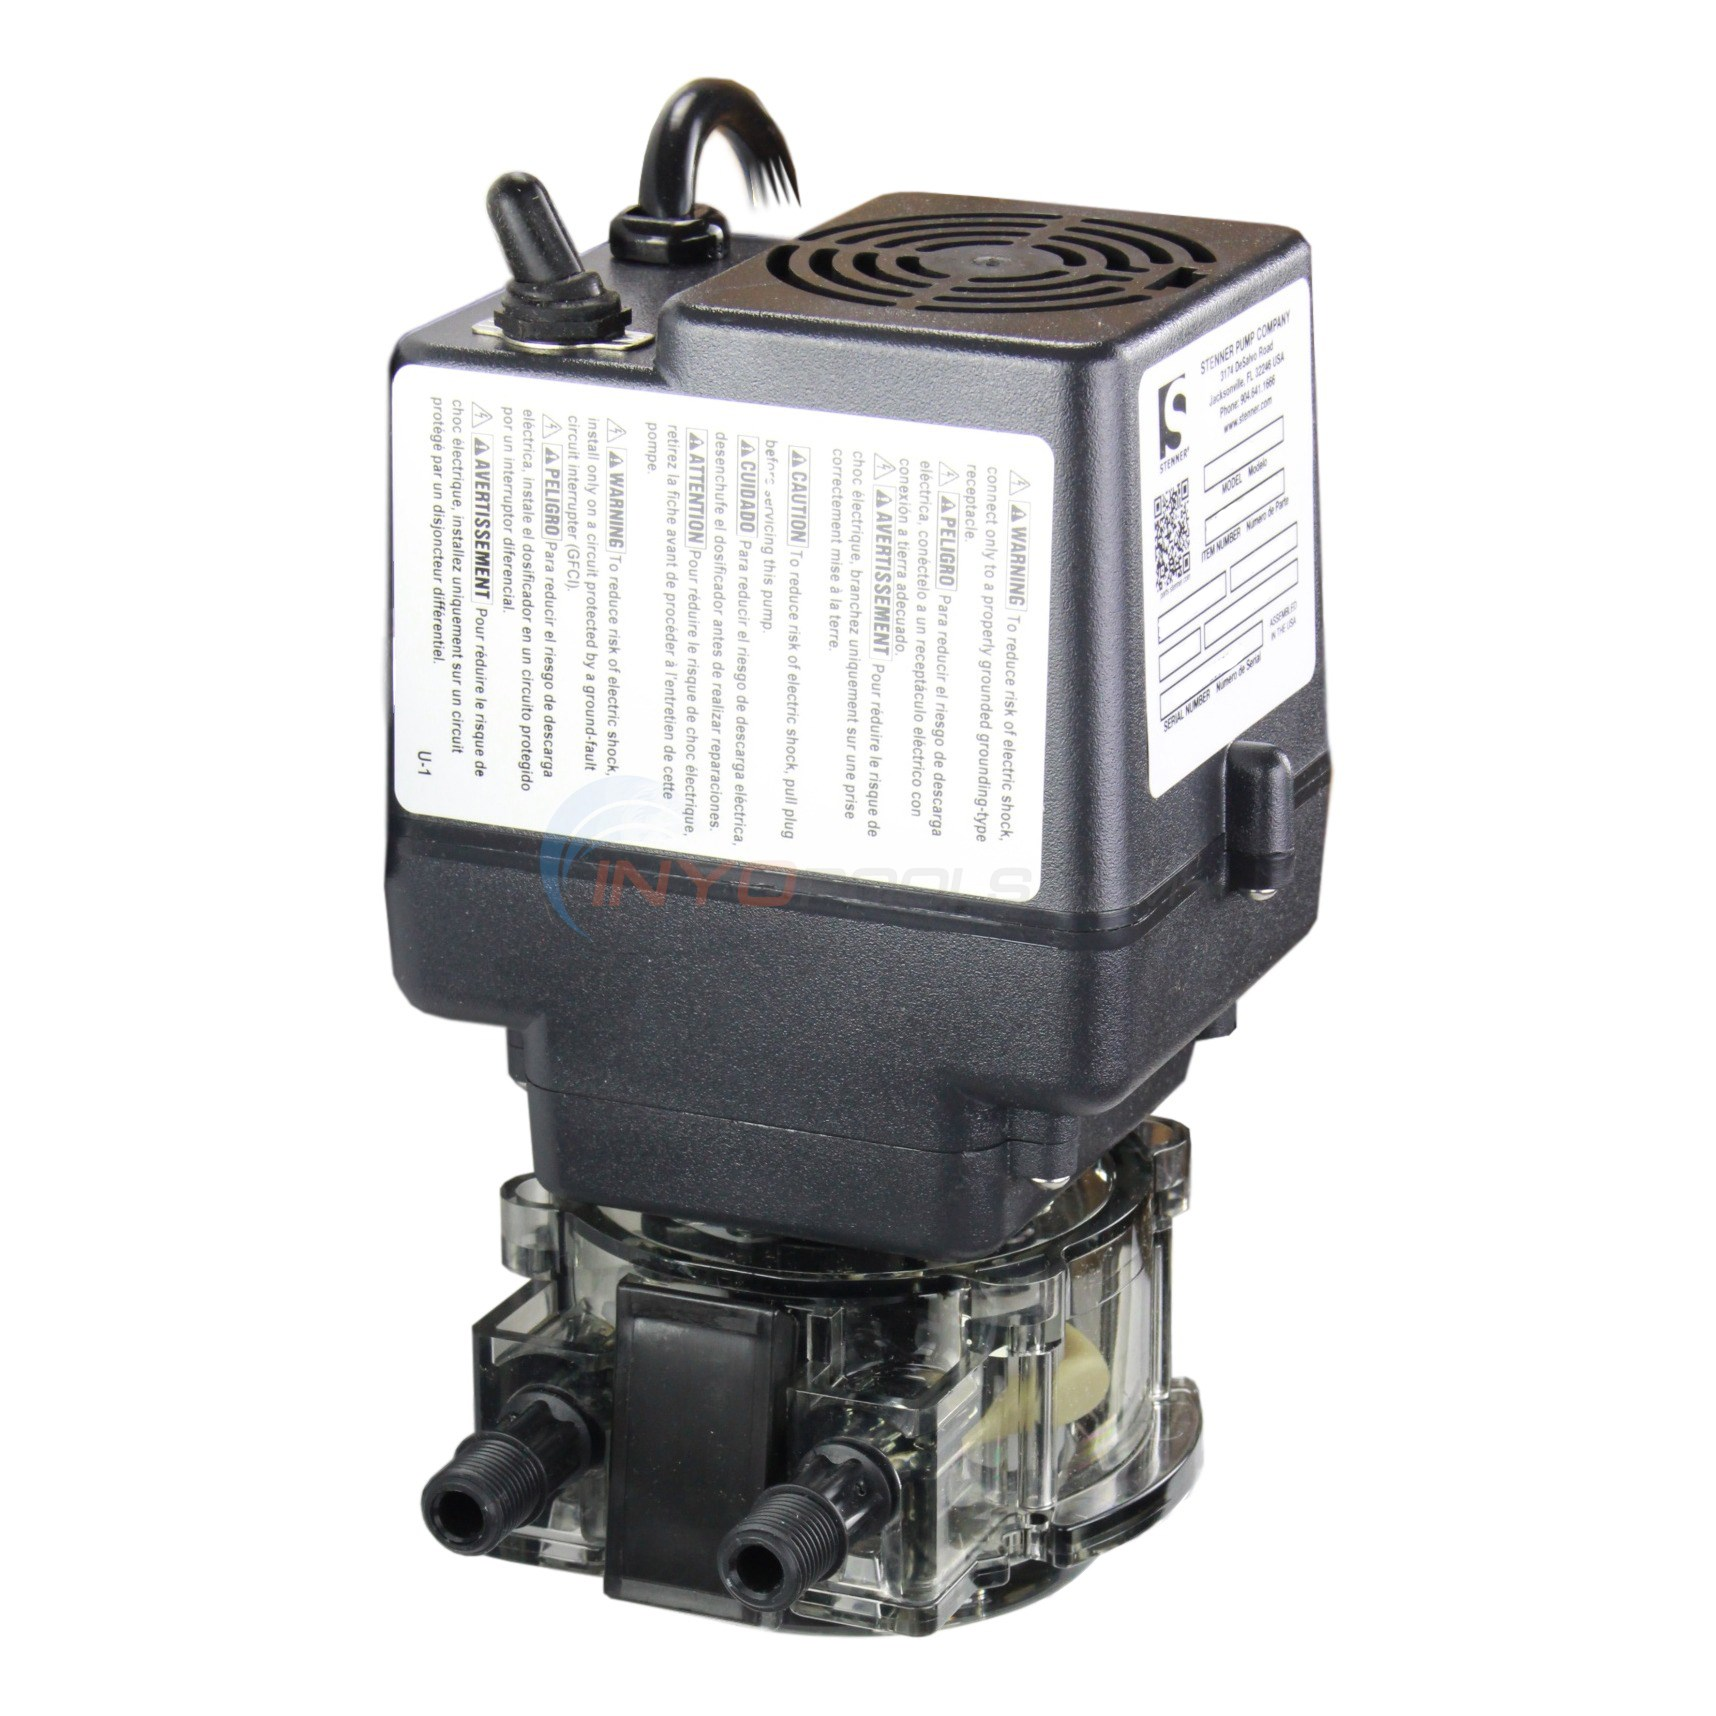 Stenner 85 GPD Fixed Rate Pump - 85MFL5A3SUAA